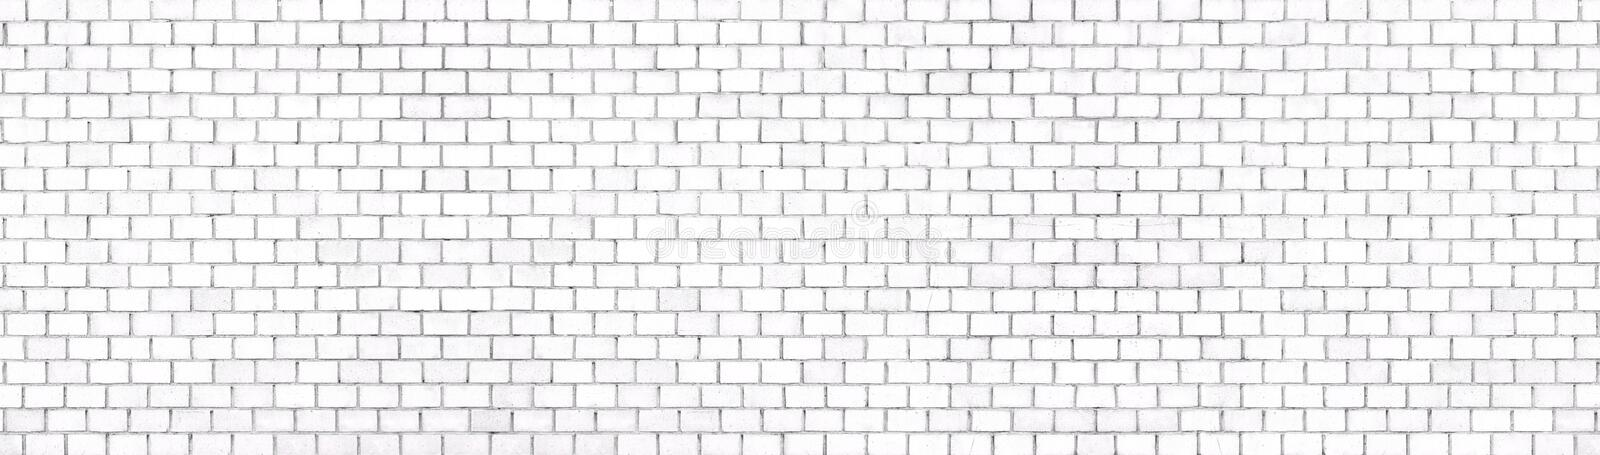 White brick wall panoramic background for design royalty free stock image